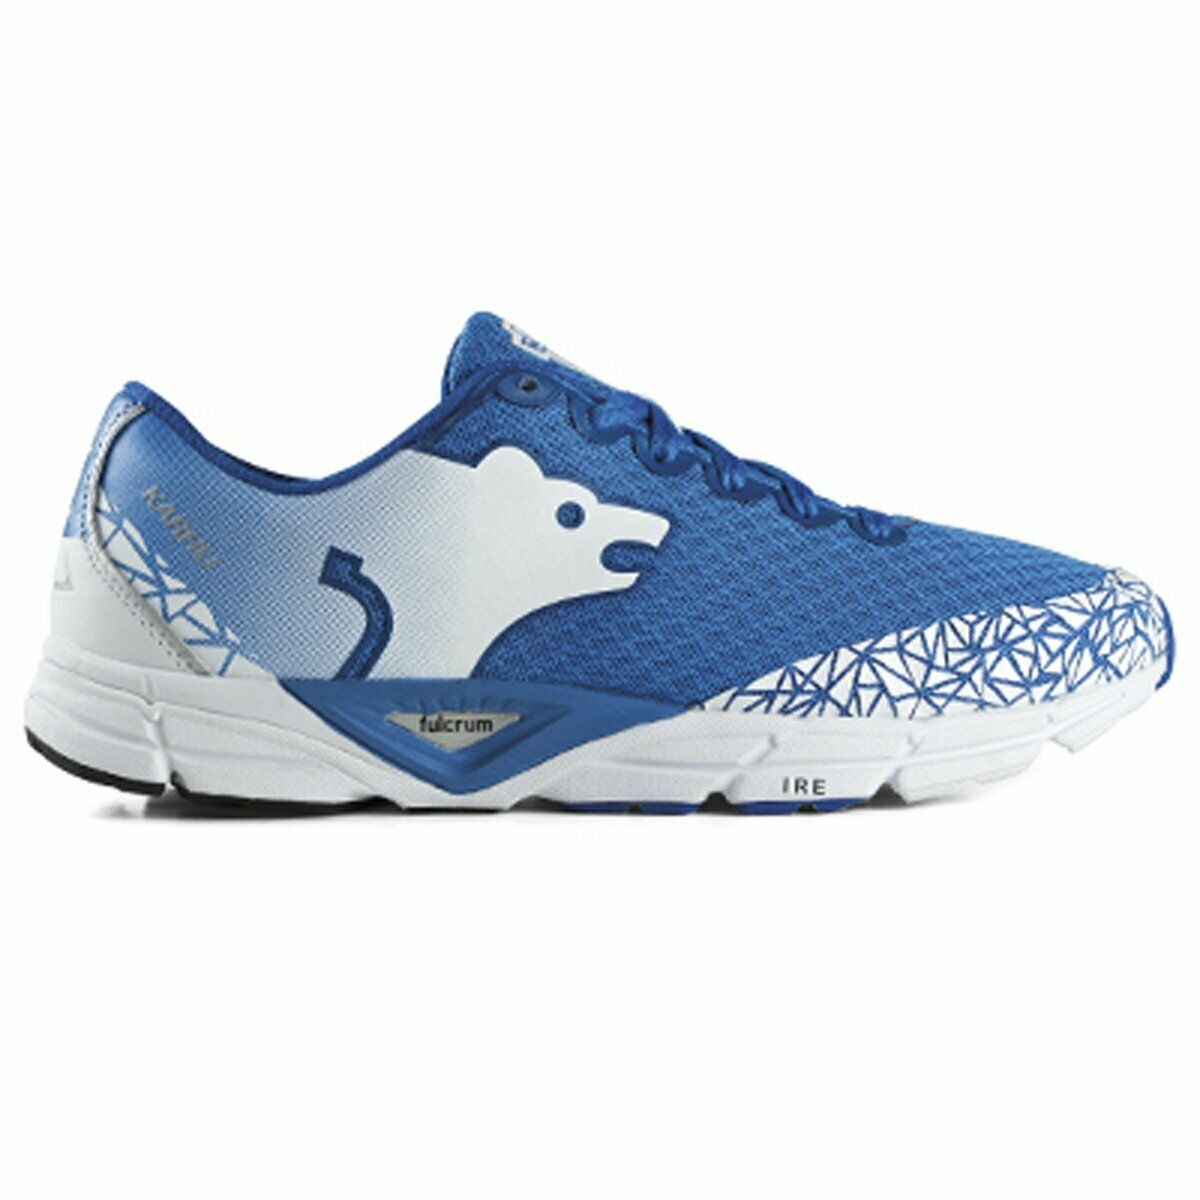 KARHU FLOW 6 IRE shoes Running da Corsa Ginnastica men Podismo Sneakers EU 44